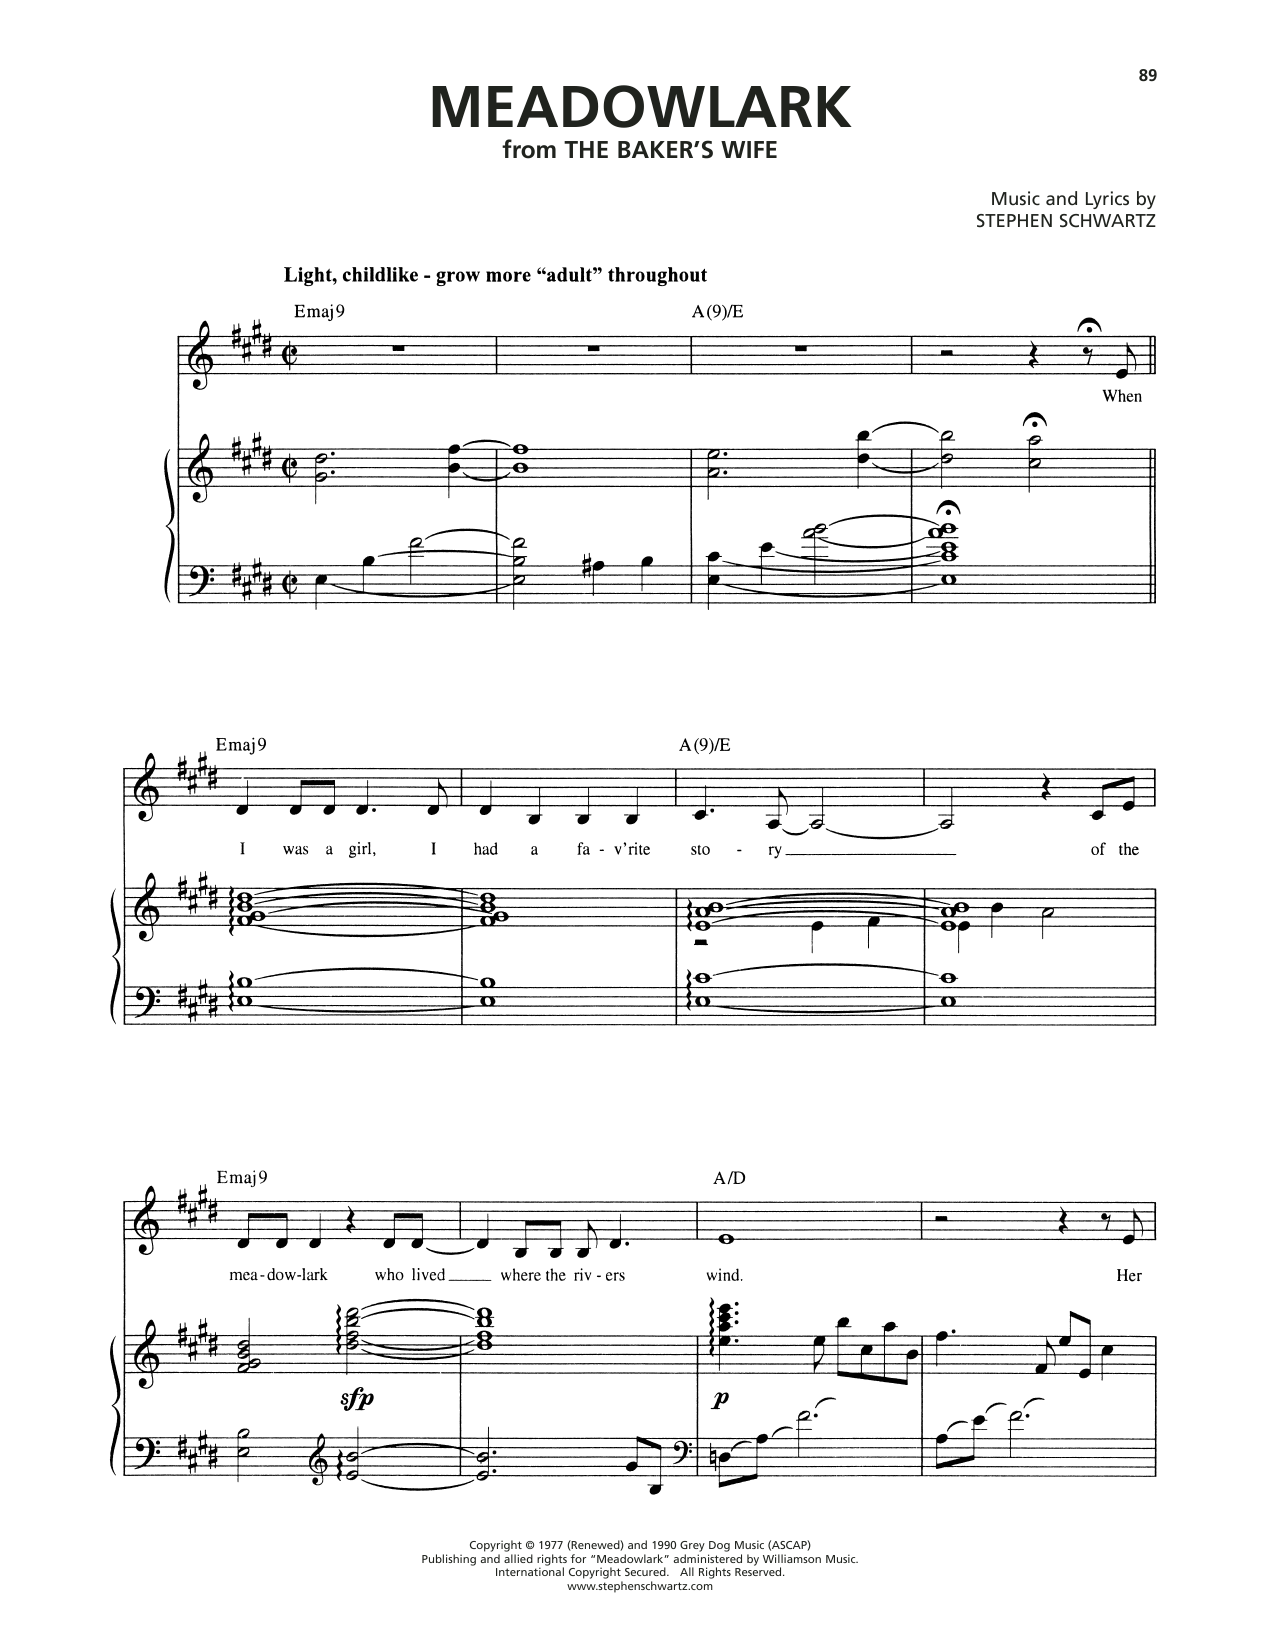 Stephen Schwartz Meadowlark (from The Baker's Wife) sheet music notes and chords. Download Printable PDF.